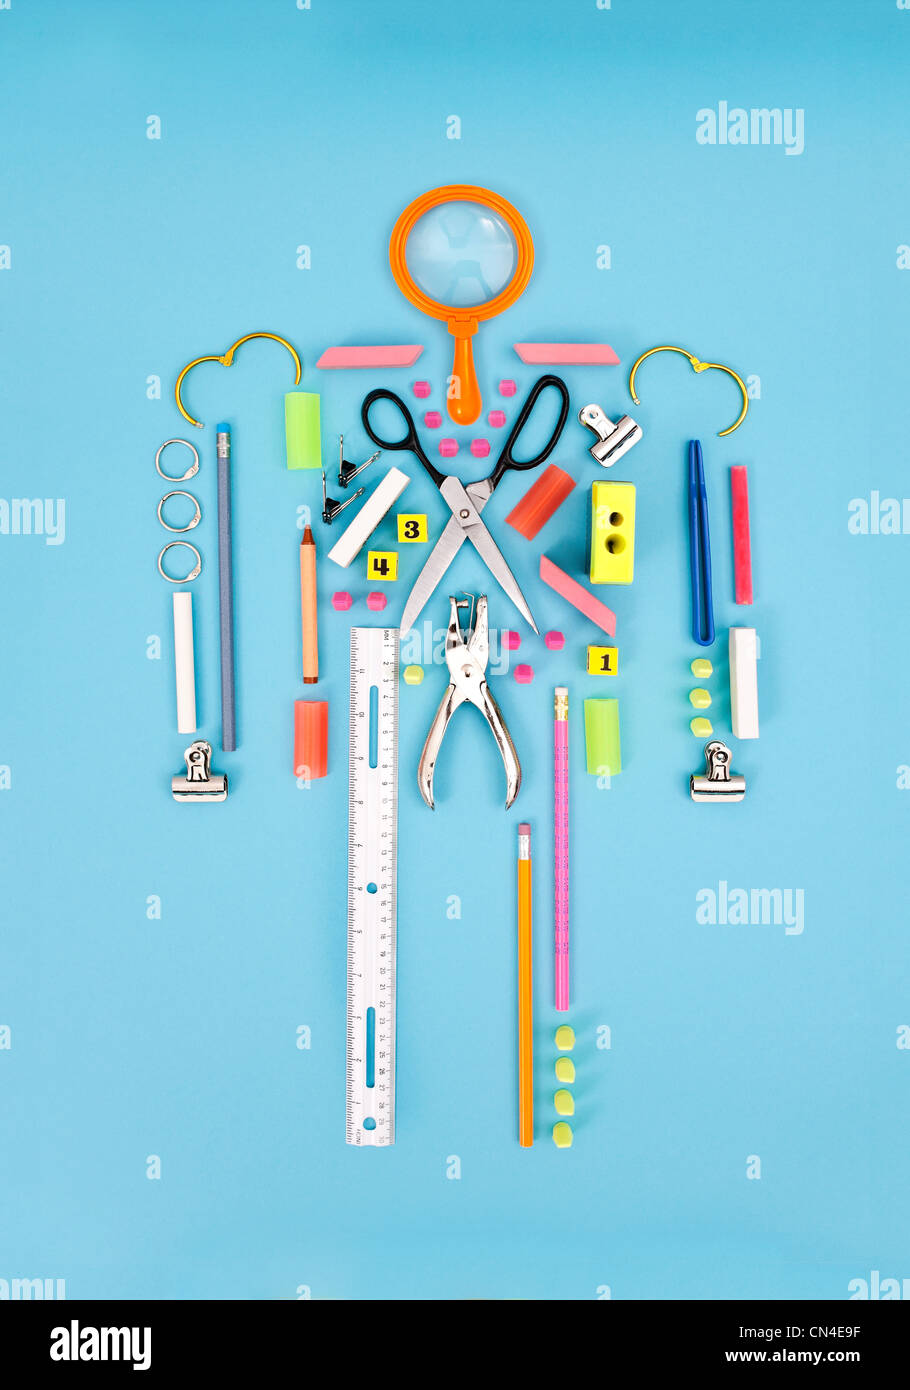 Figure made from stationery - Stock Image